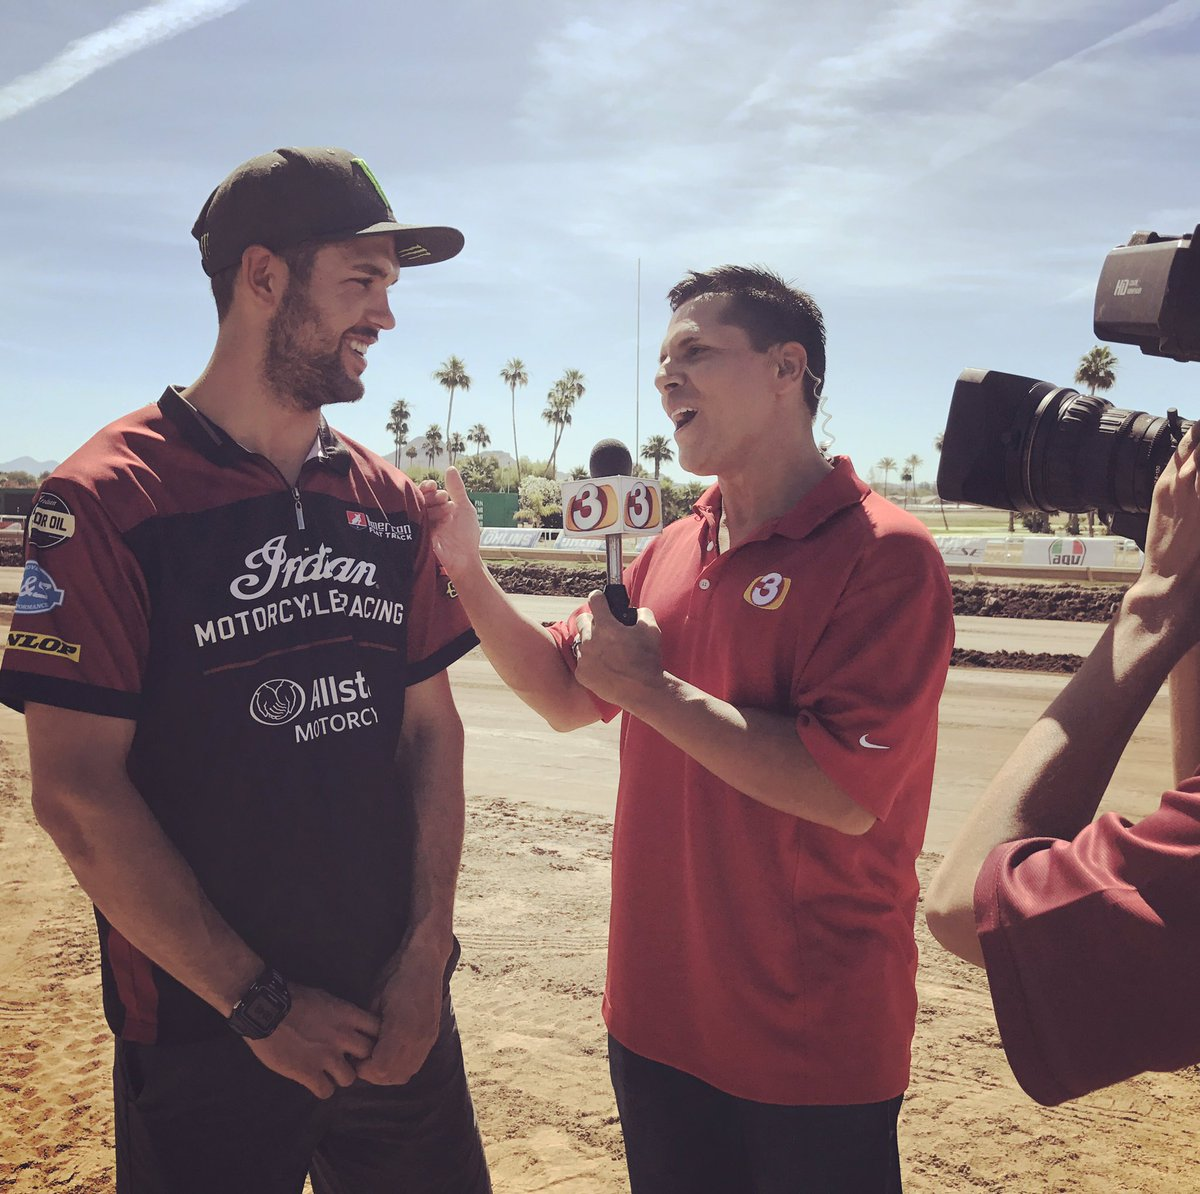 .@bradthebullet getting some TV time with at Turf Paradise before tomorrow's #ArizonaMile